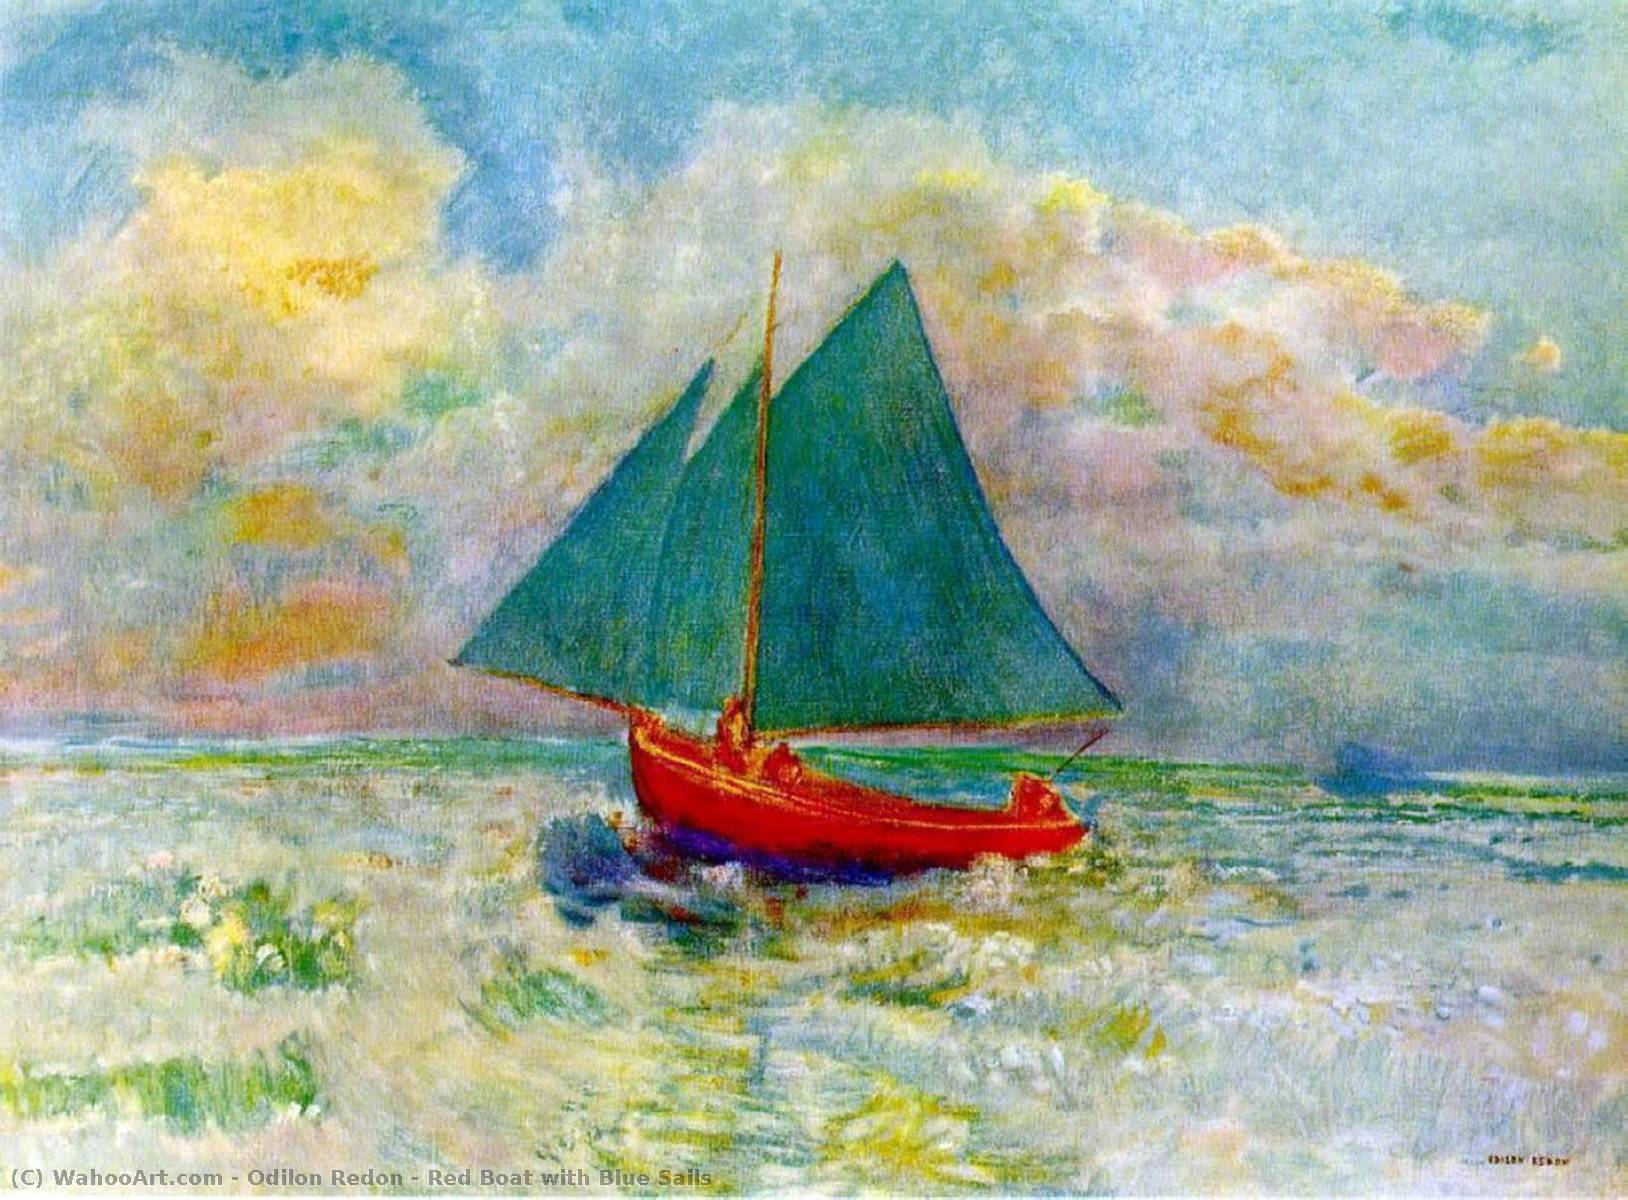 Order Reproductions | Red Boat with Blue Sails, 1907 by Odilon Redon (1840-1916, France) | WahooArt.com